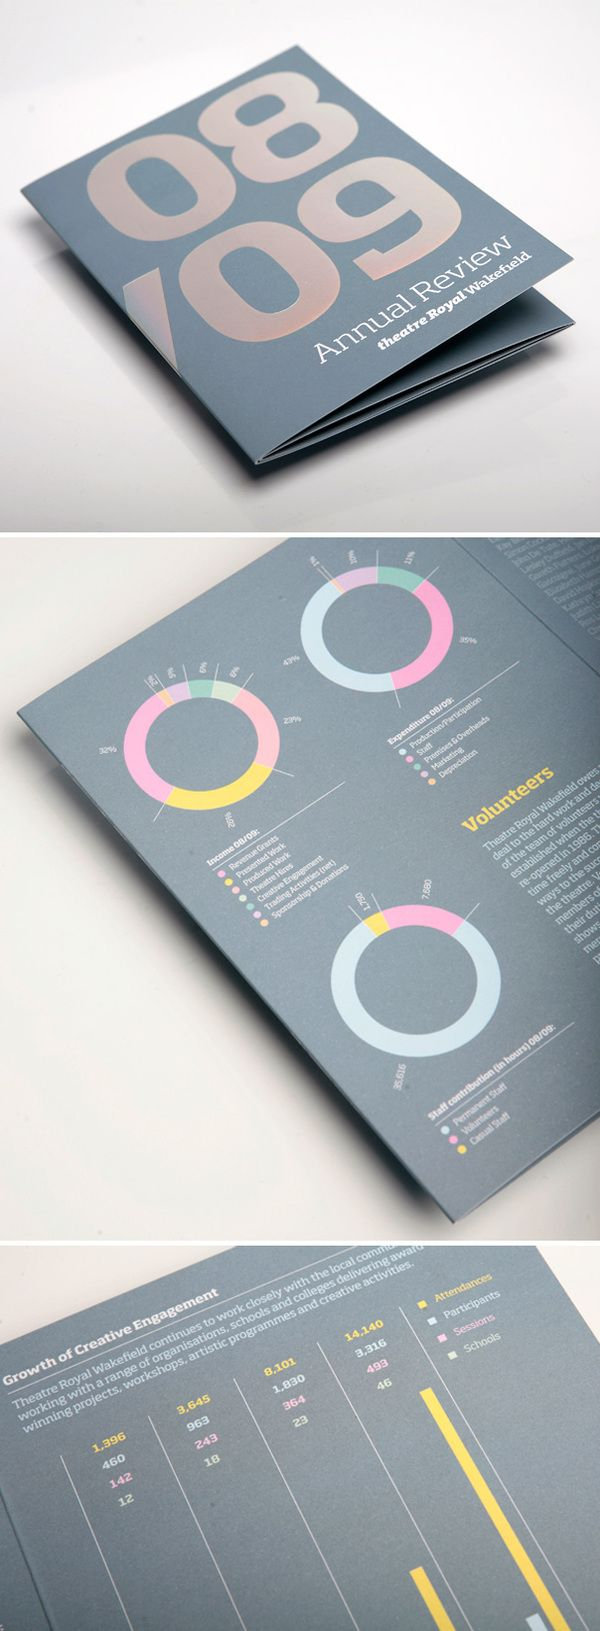 TRW - Annual Review by Analogue , via Behance